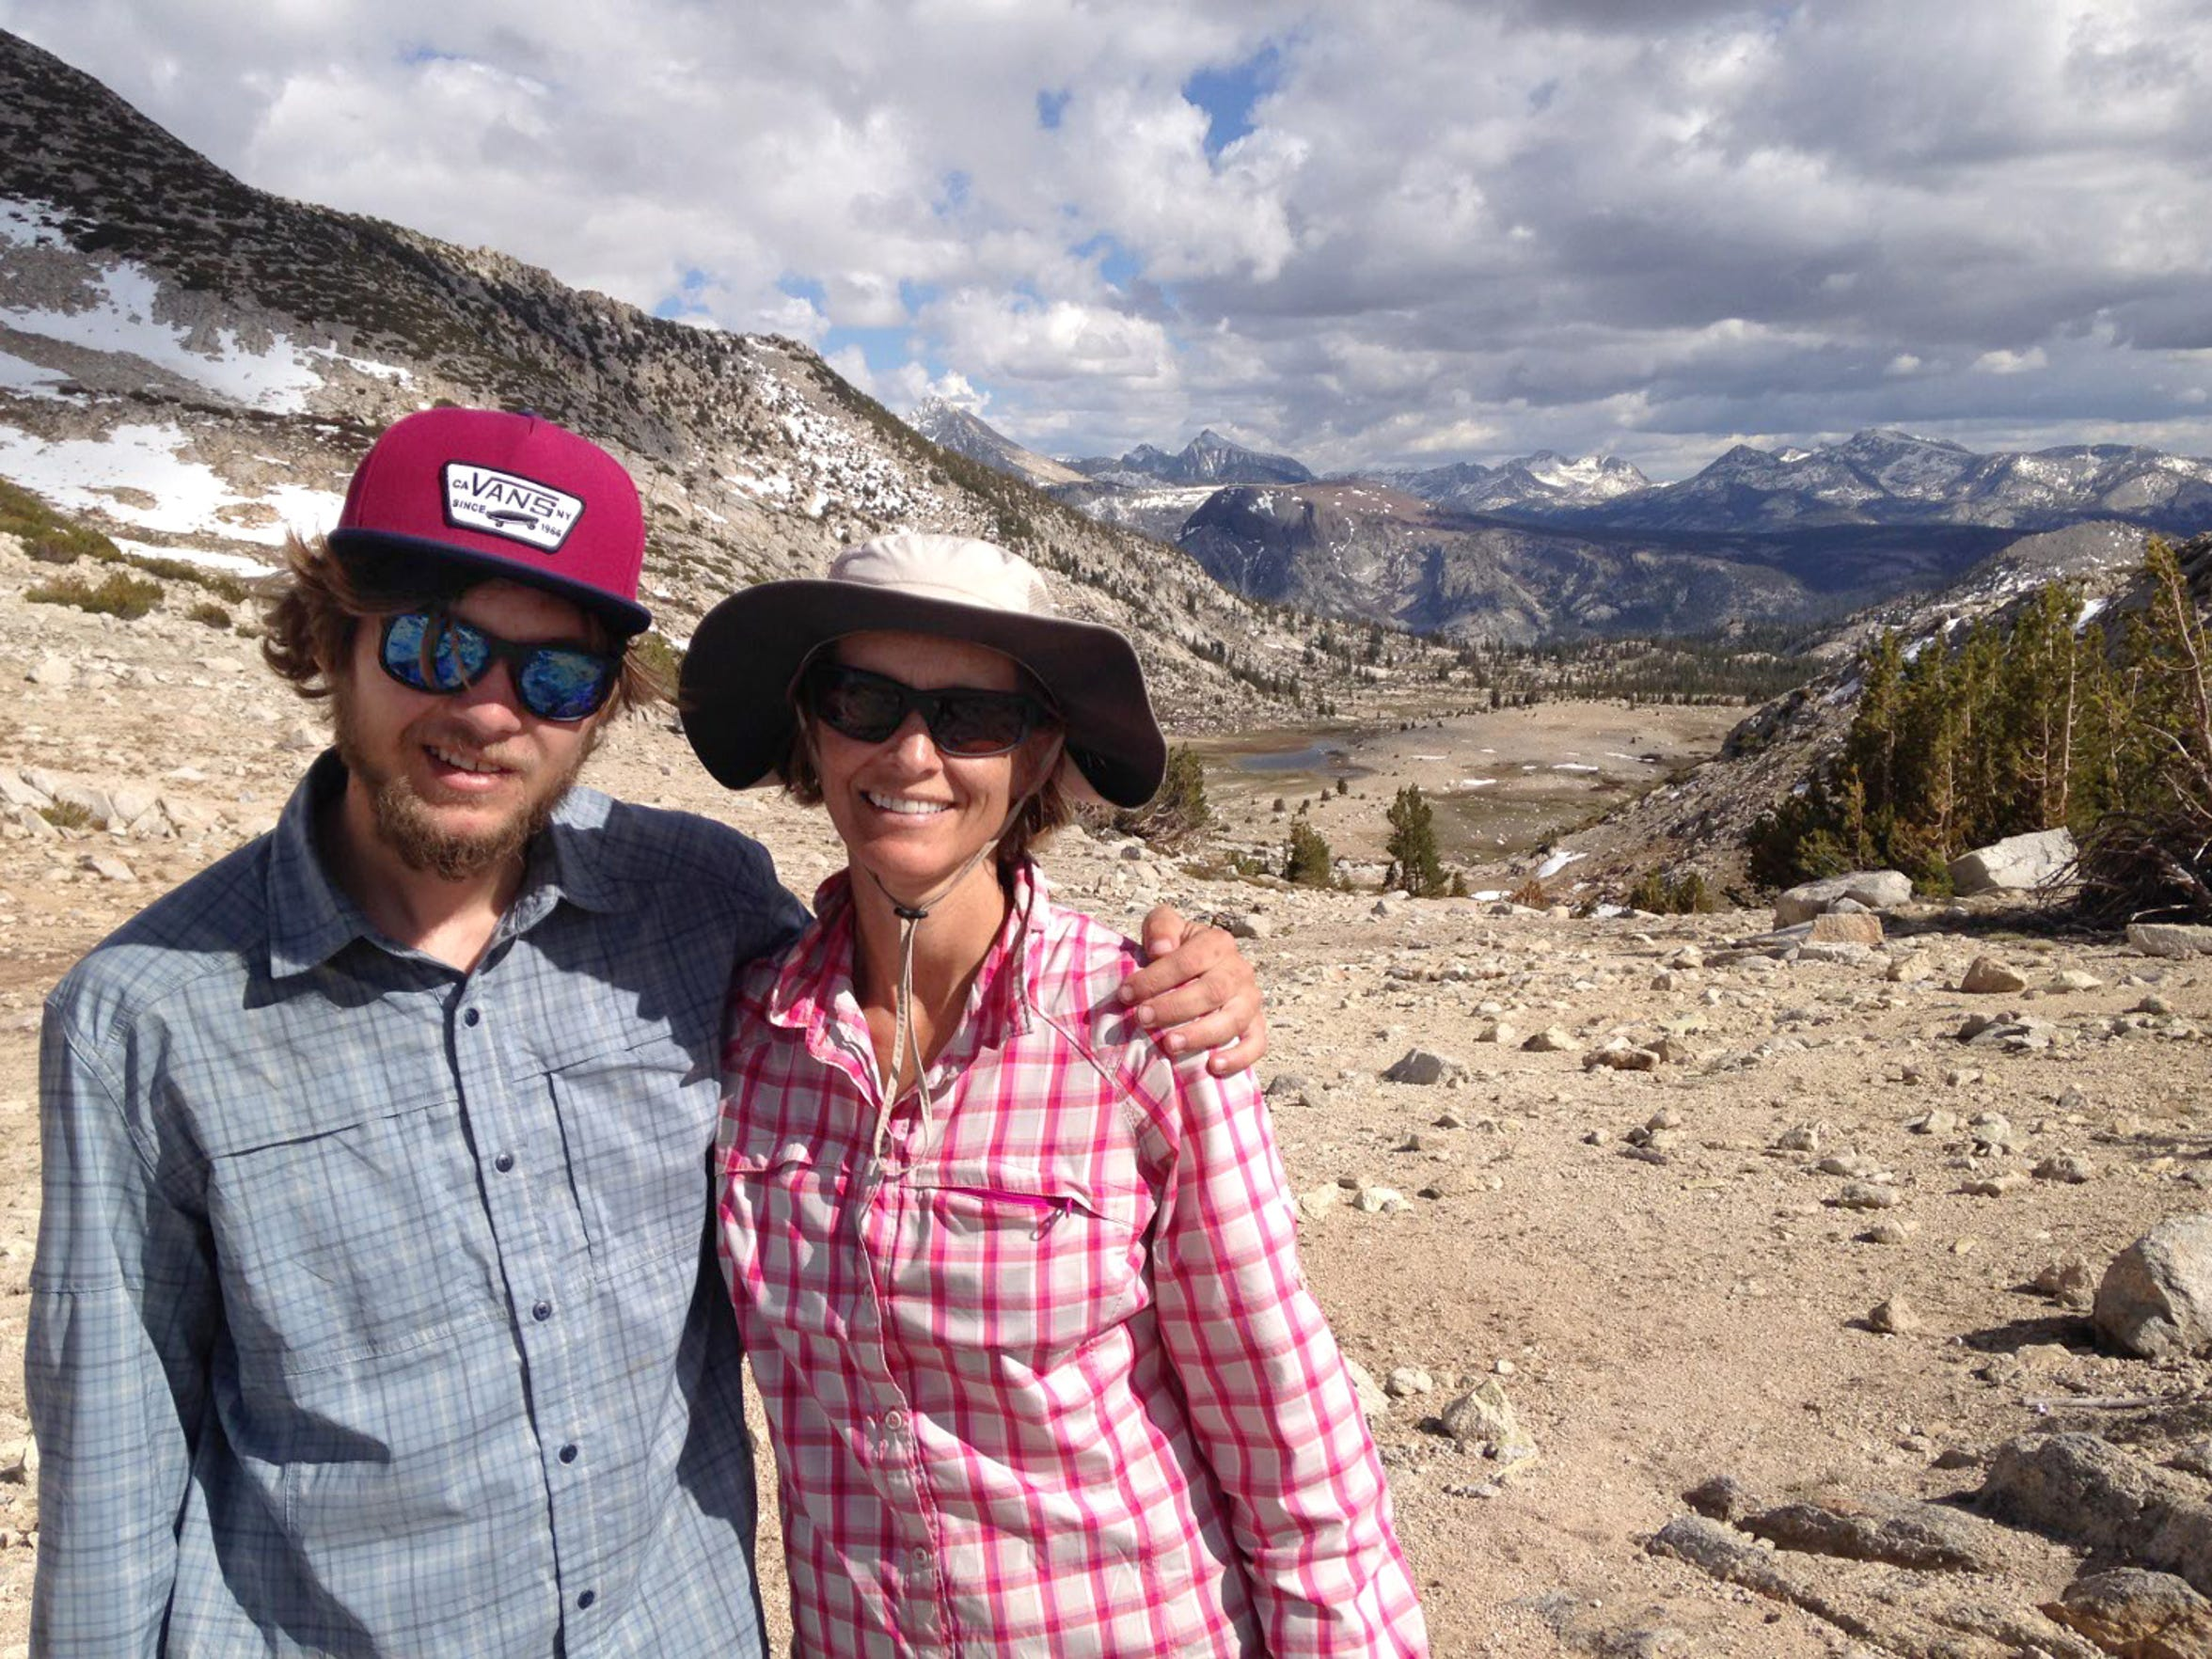 Sam Chappell and his mother Nancy hiked 93 miles this